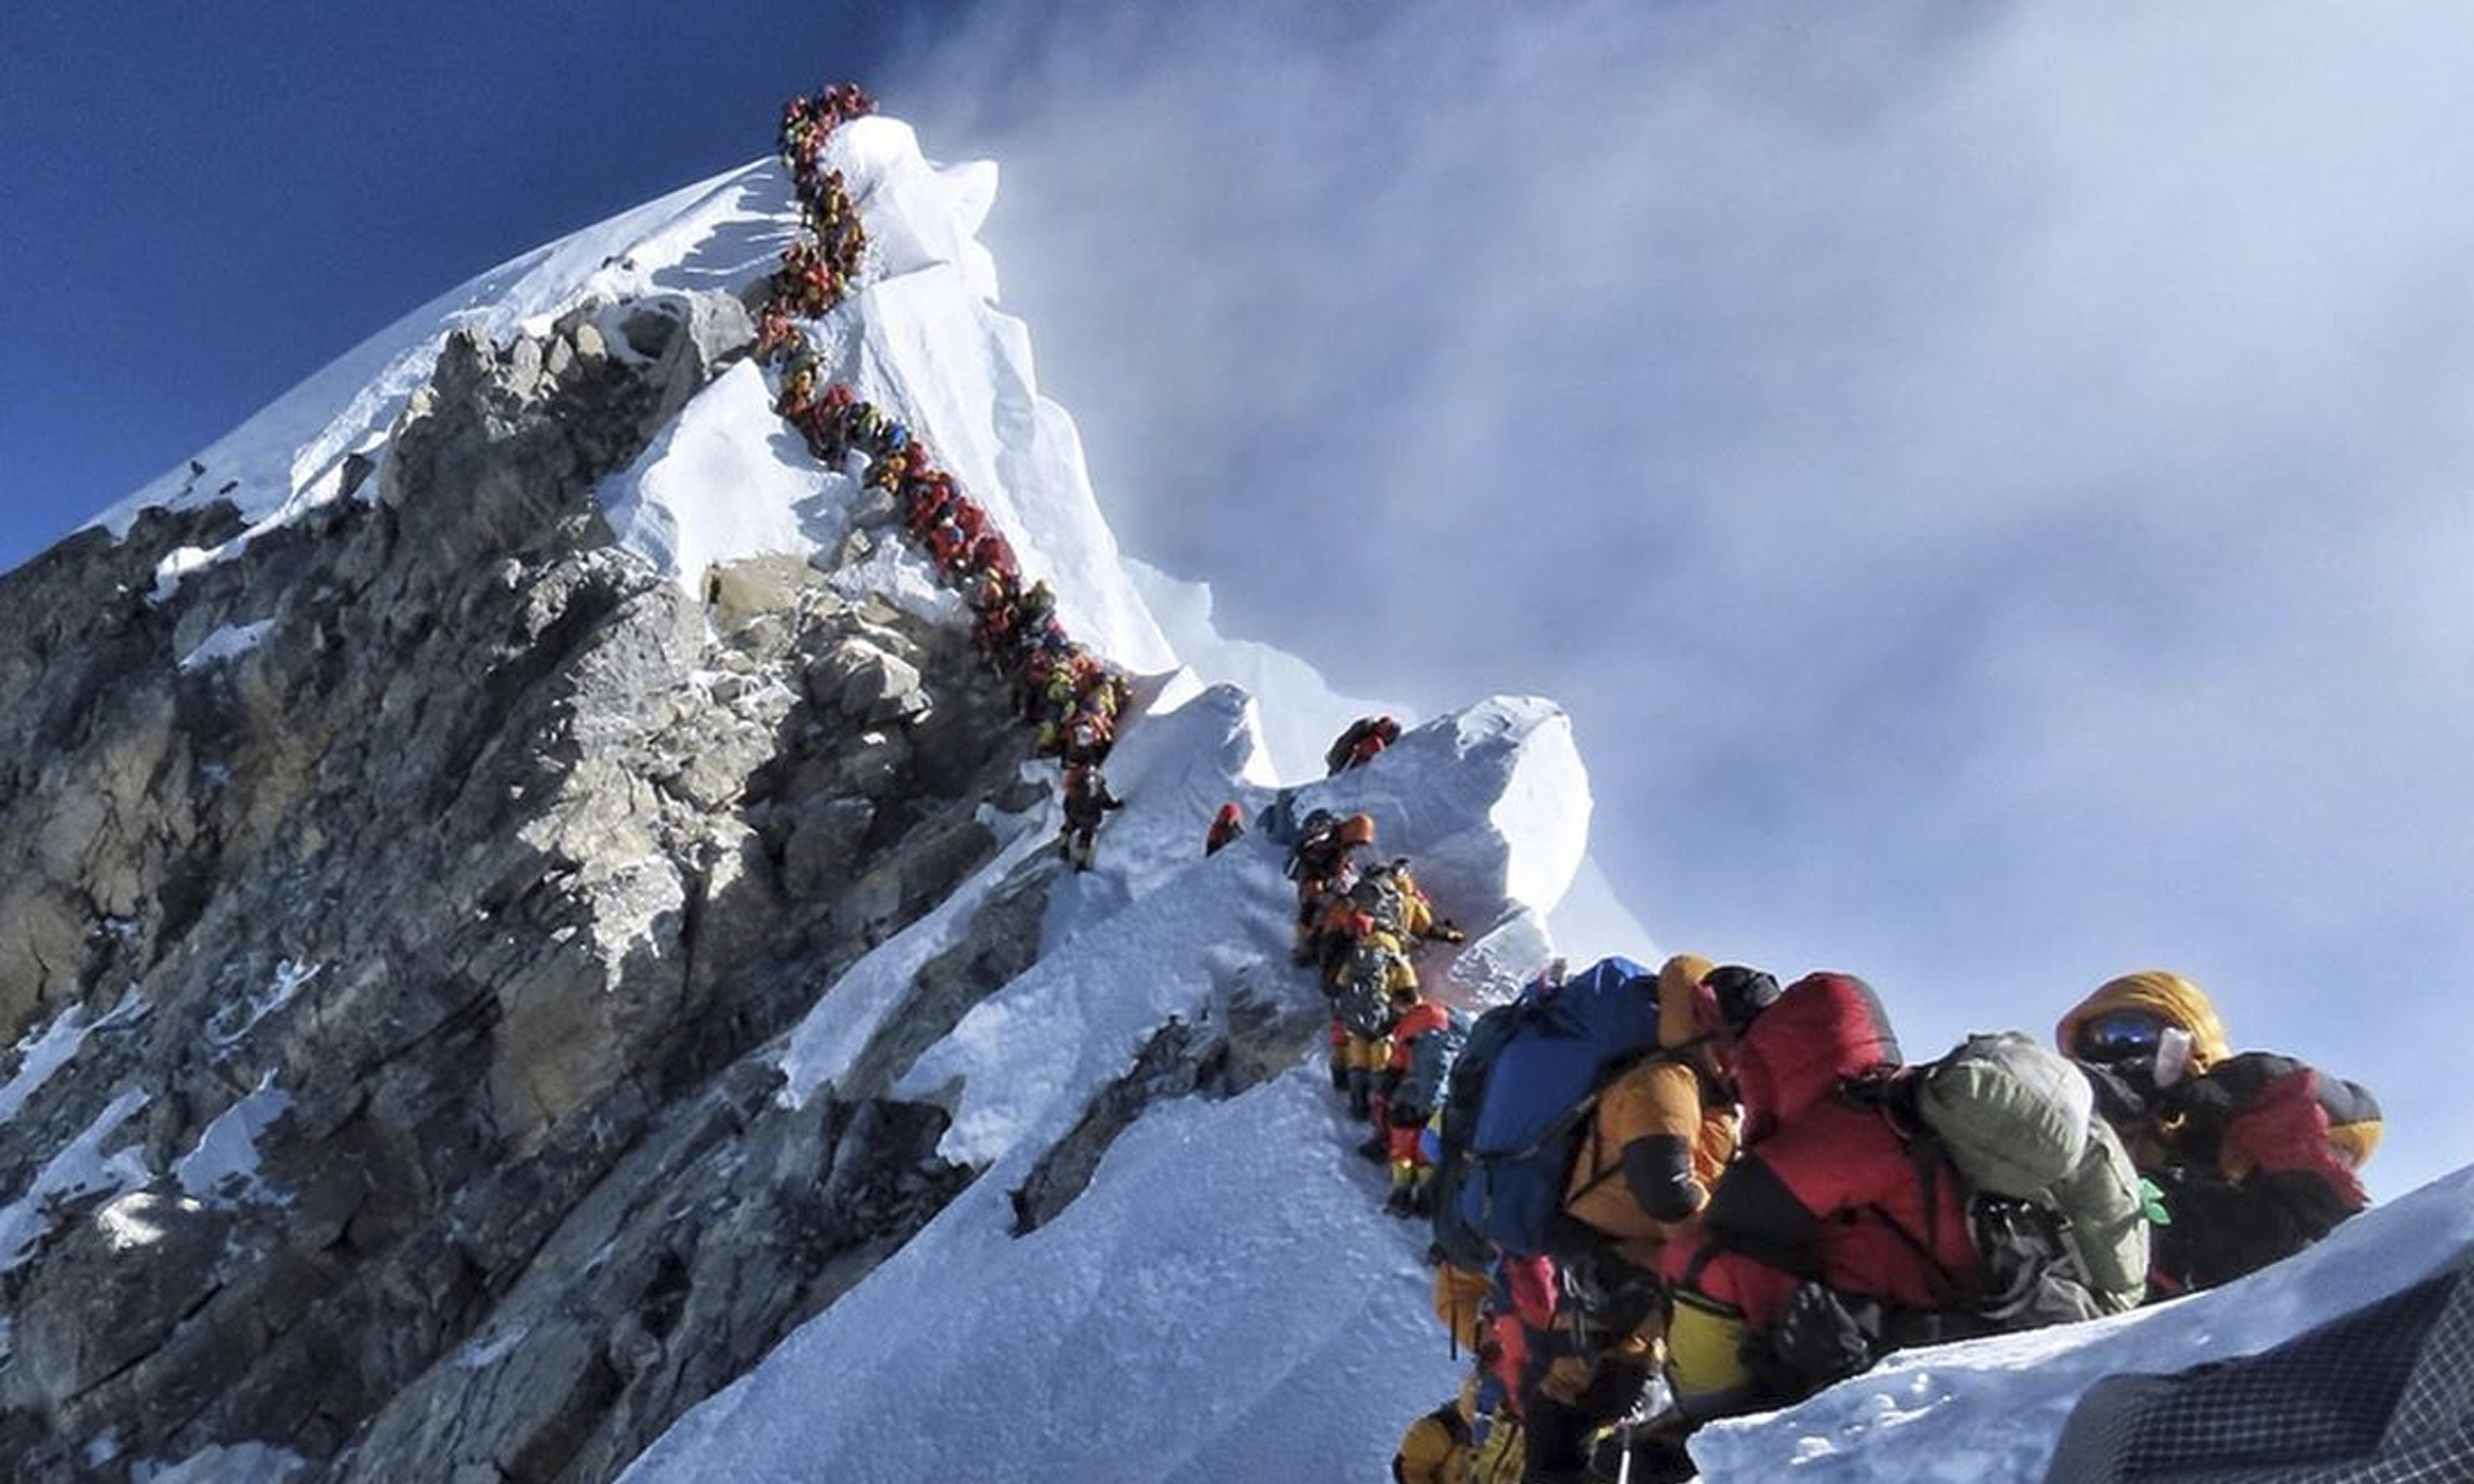 Nepal sets new rules for Everest climbers after deadly season